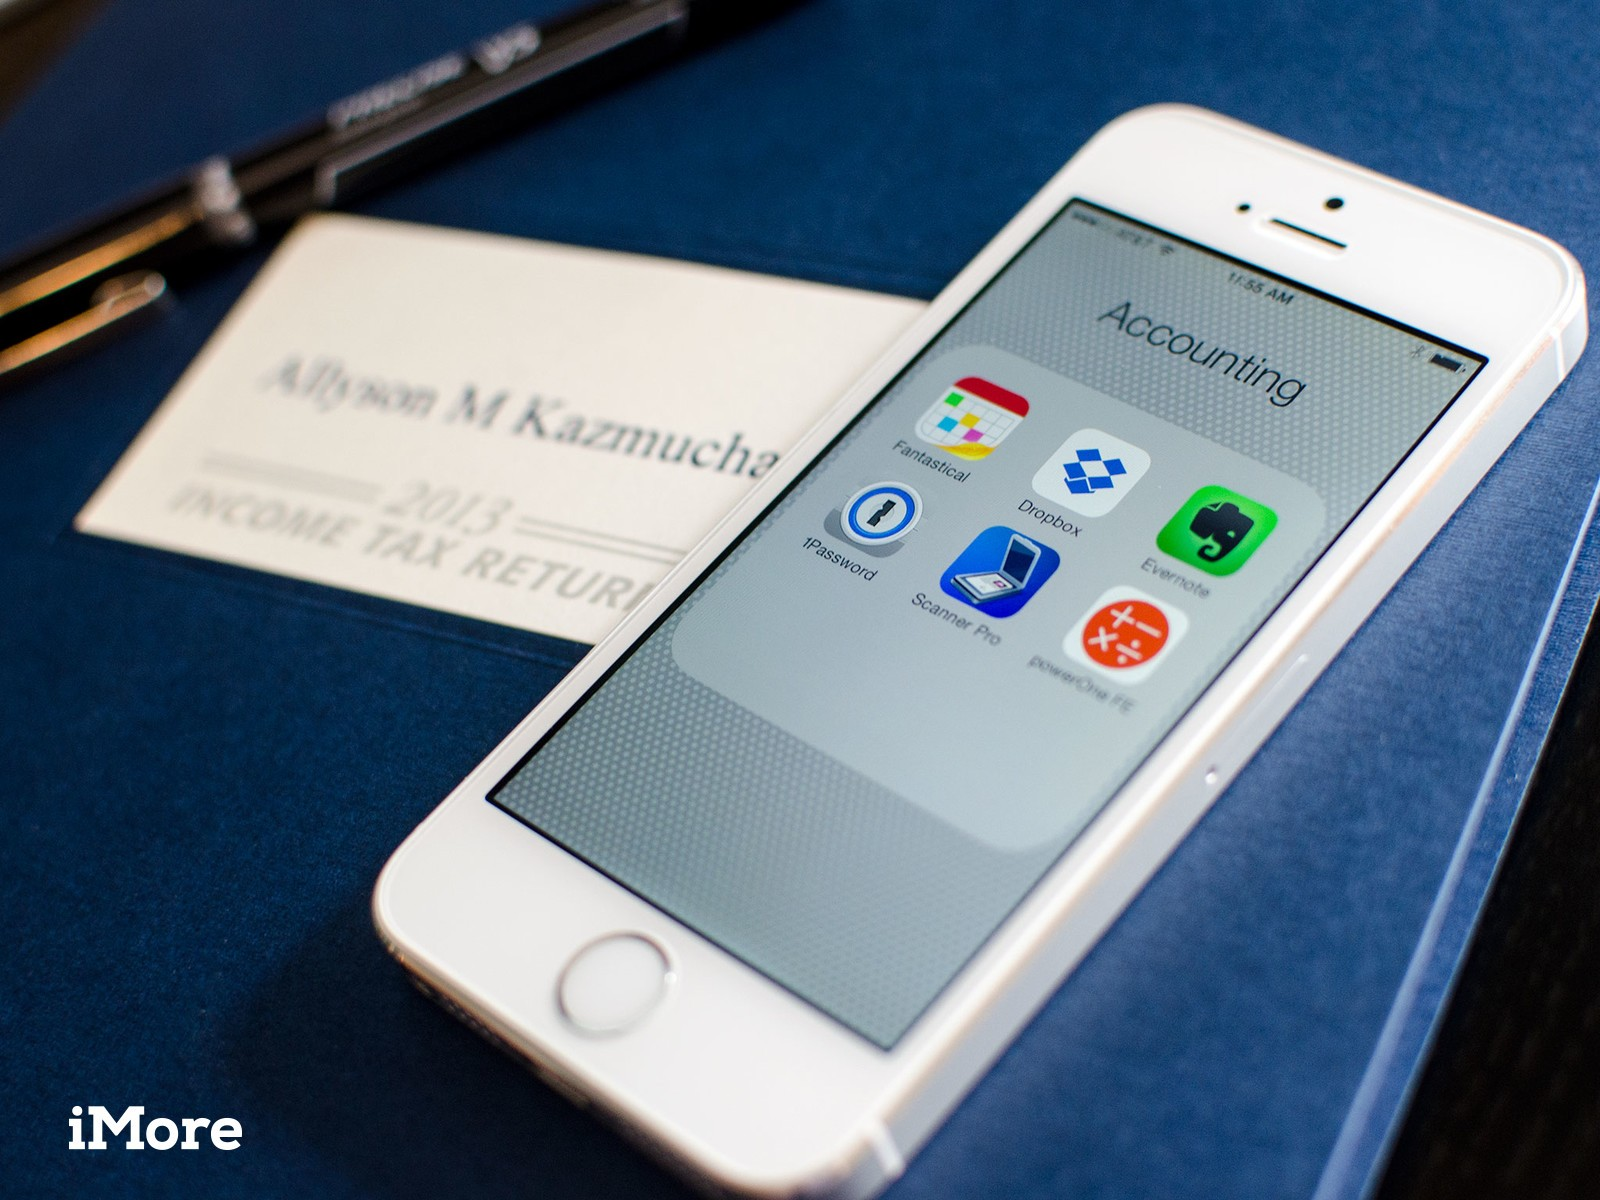 Best apps for accountants and CPAs: Scanner Pro, 1Password, Dropbox, and more!